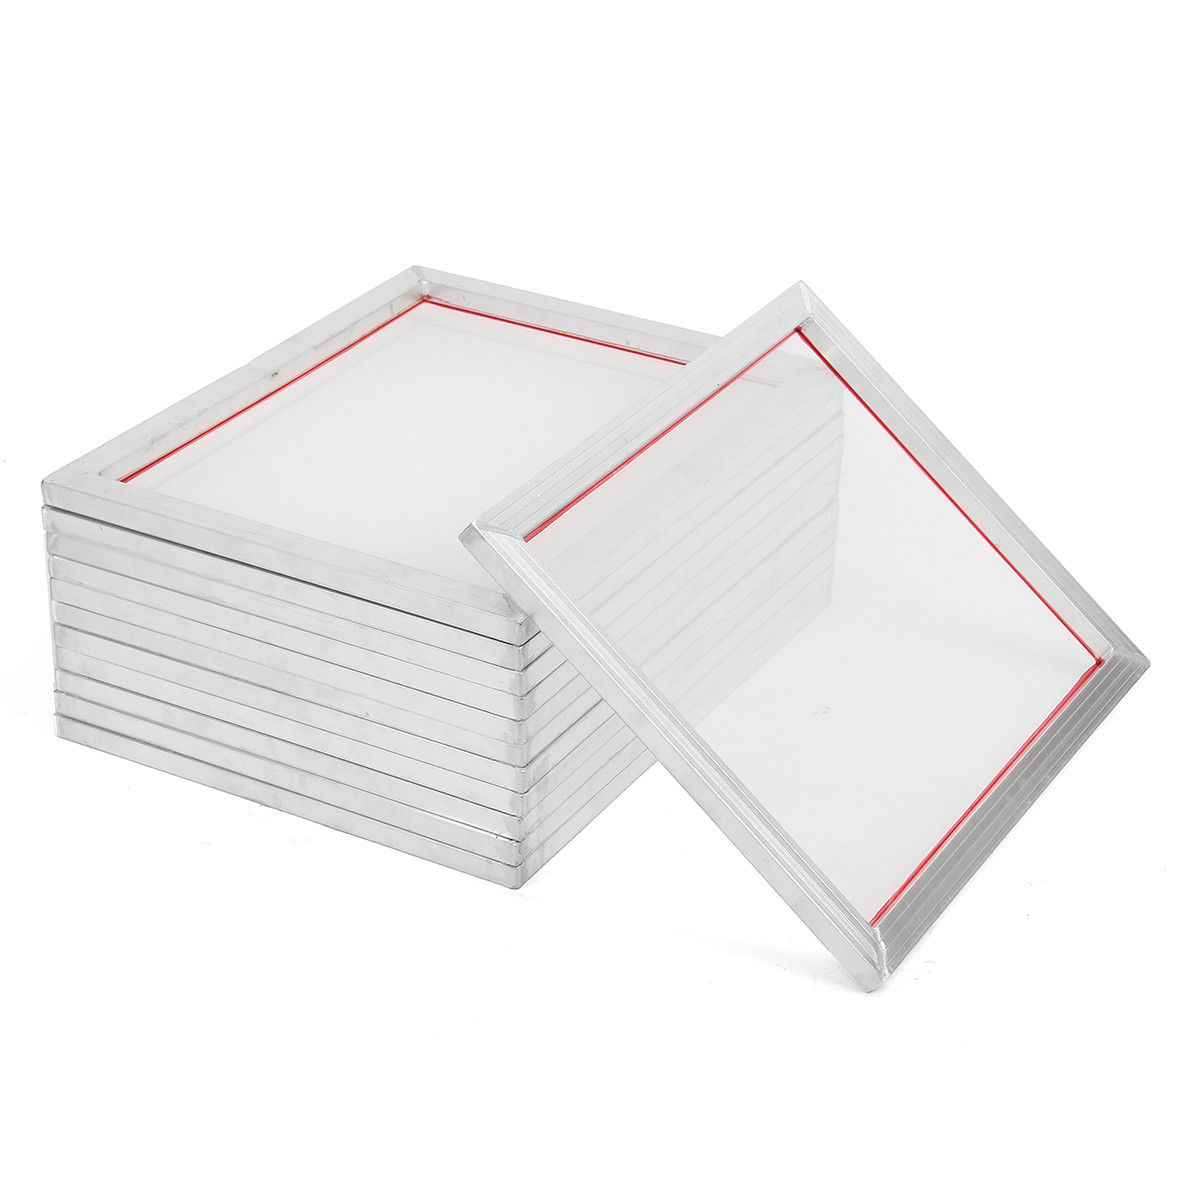 2Pcs A5 Screen Printing Aluminium Frame Stretched 32*22cm With 32T-120T Silk Print Polyester Mesh For Printed Circuit Boards